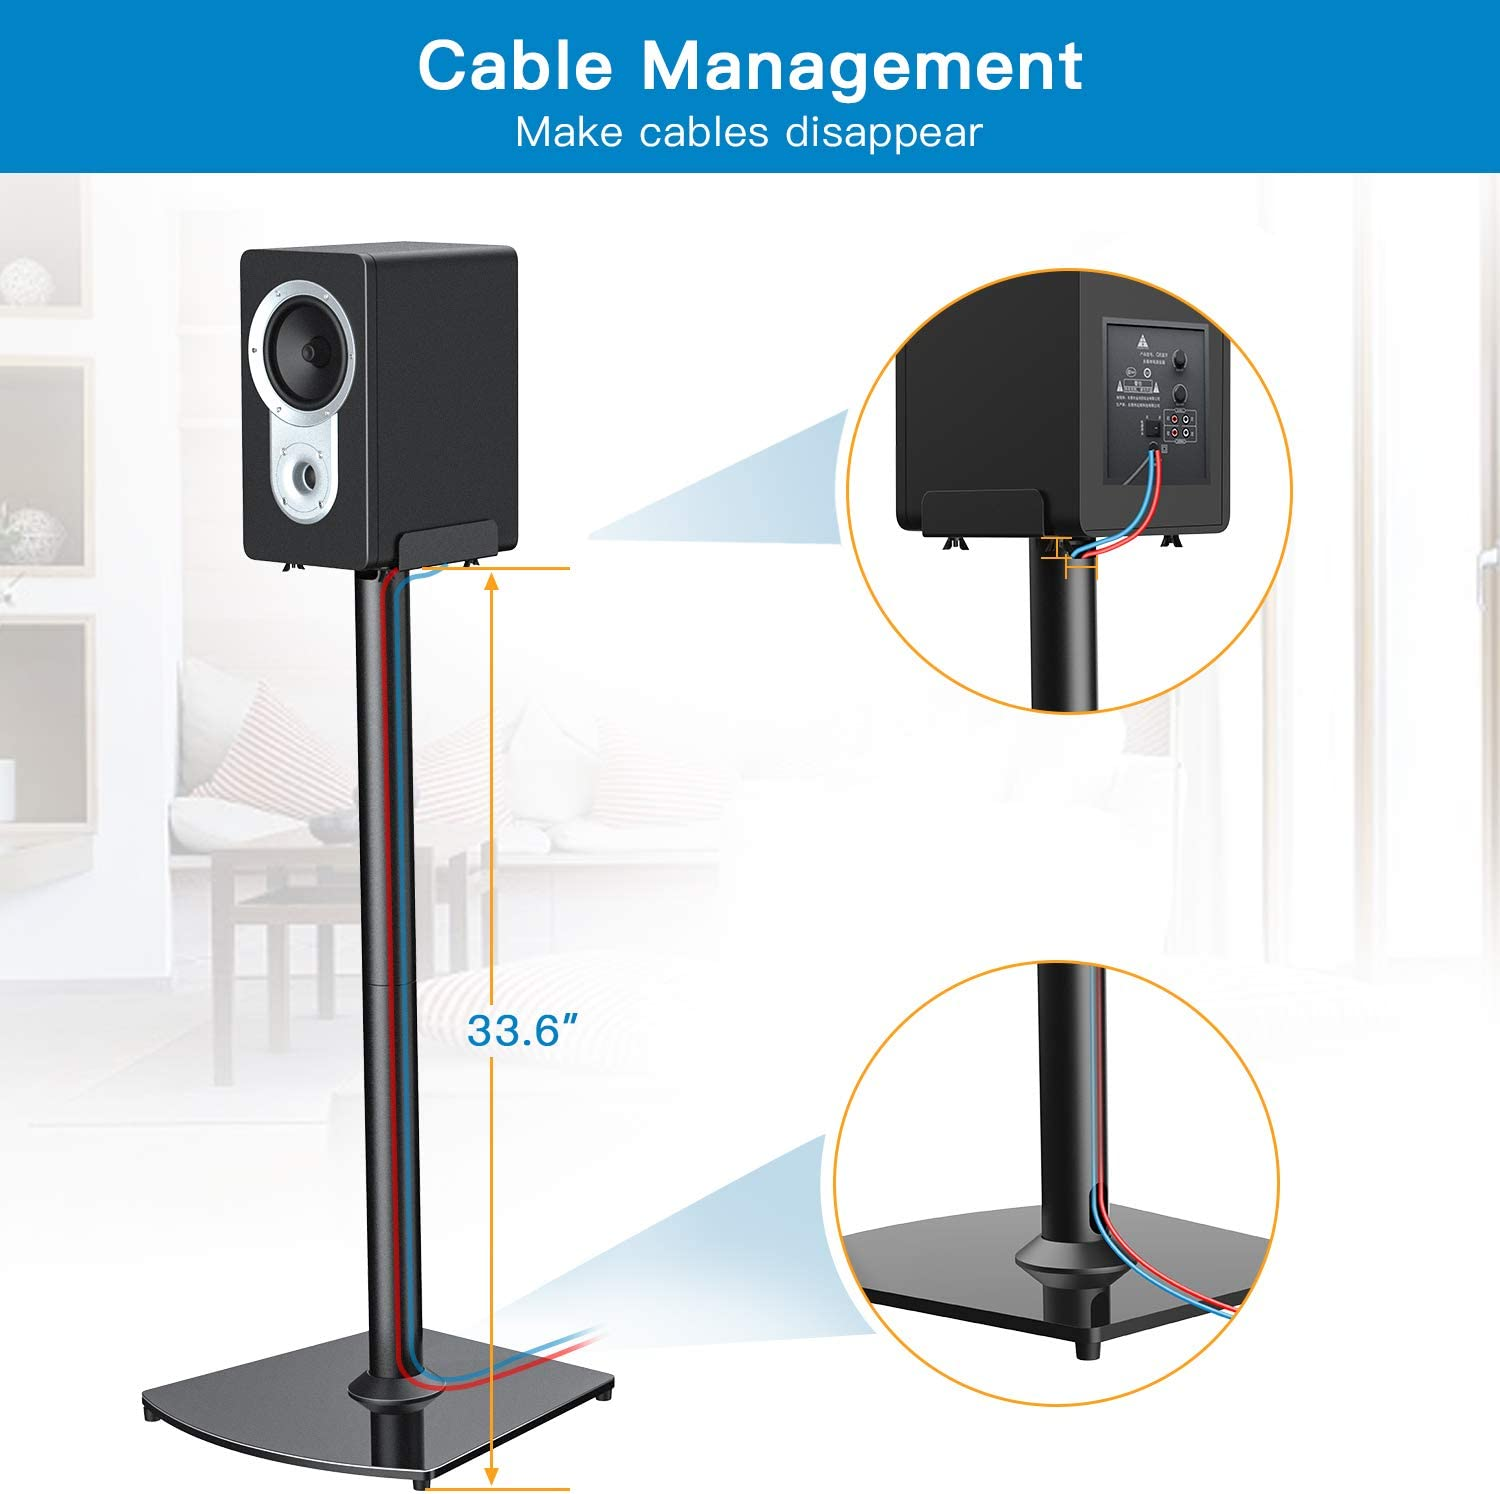 Pioneer Play:3 Klipsch Sony PERLESMITH Universal Speaker Stands- for Sonos Play:1 Bose Yamaha Polk /& Other Bookshelf Speaker-Heavy Duty Floor Stands with Cable Management-1 Pair